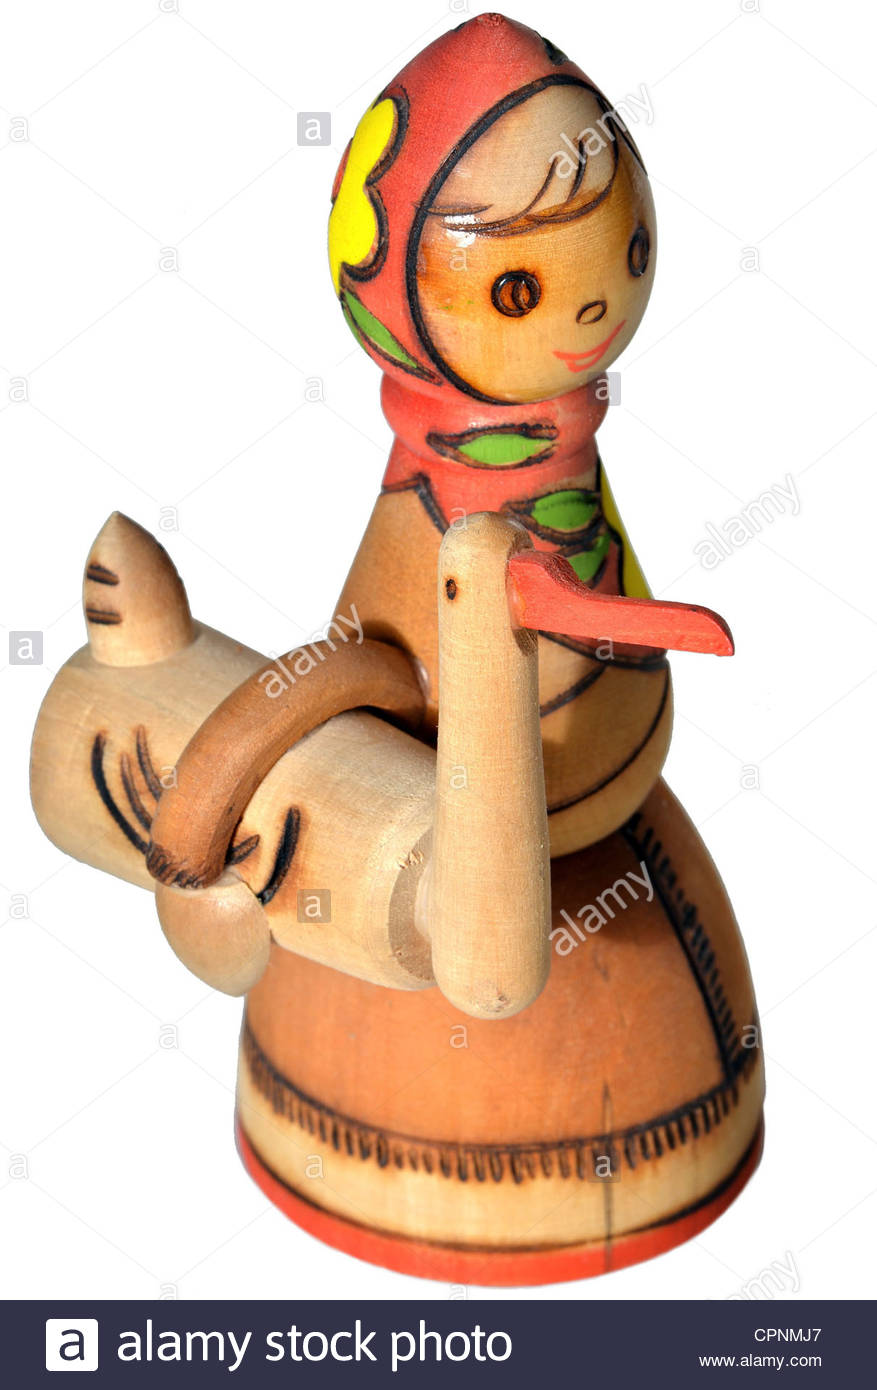 Little Wooden Doll Stock Photos & Little Wooden Doll Stock Images.